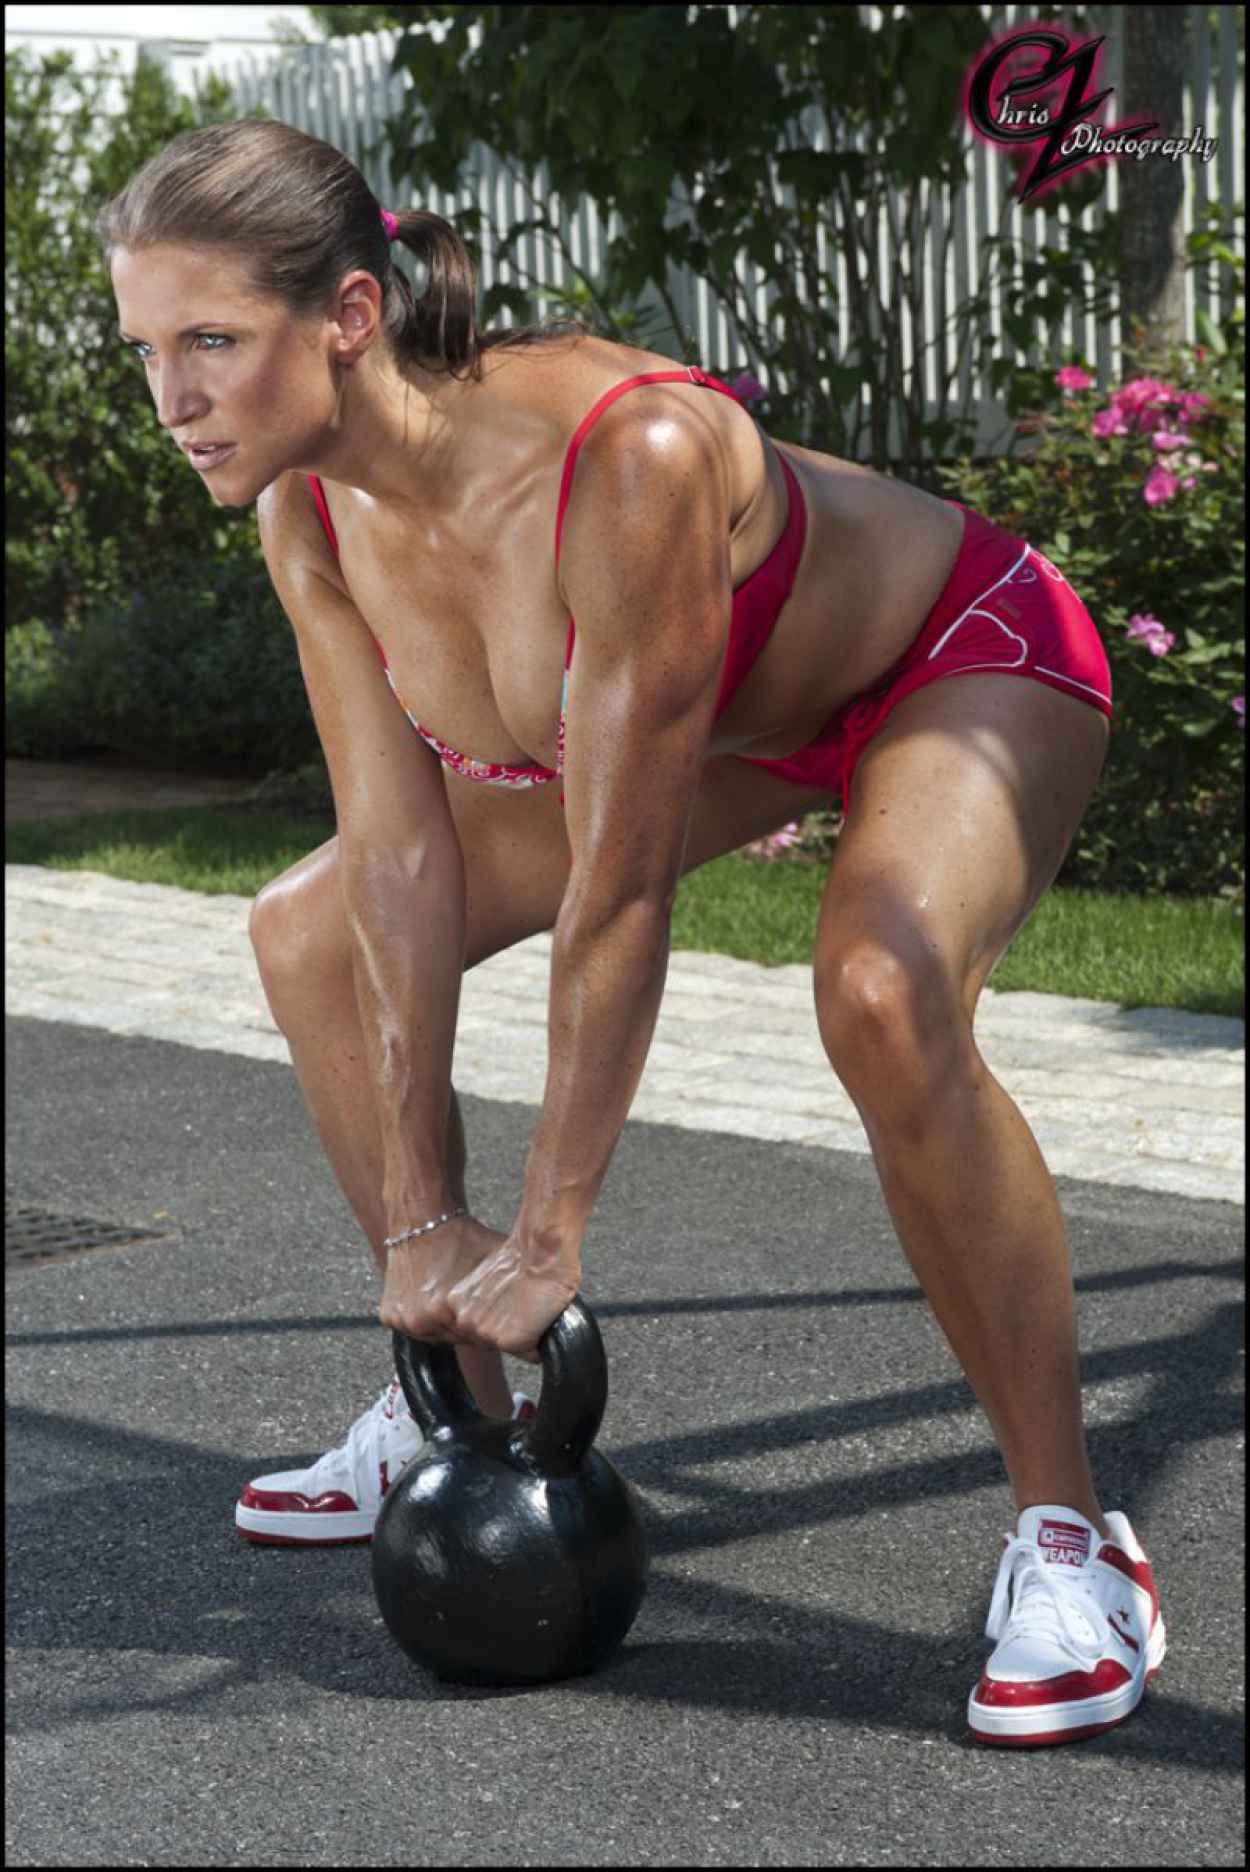 Stephanie McMahon in Bikini Working Out - Chris Zimmerman Photoshoot (2012)-1